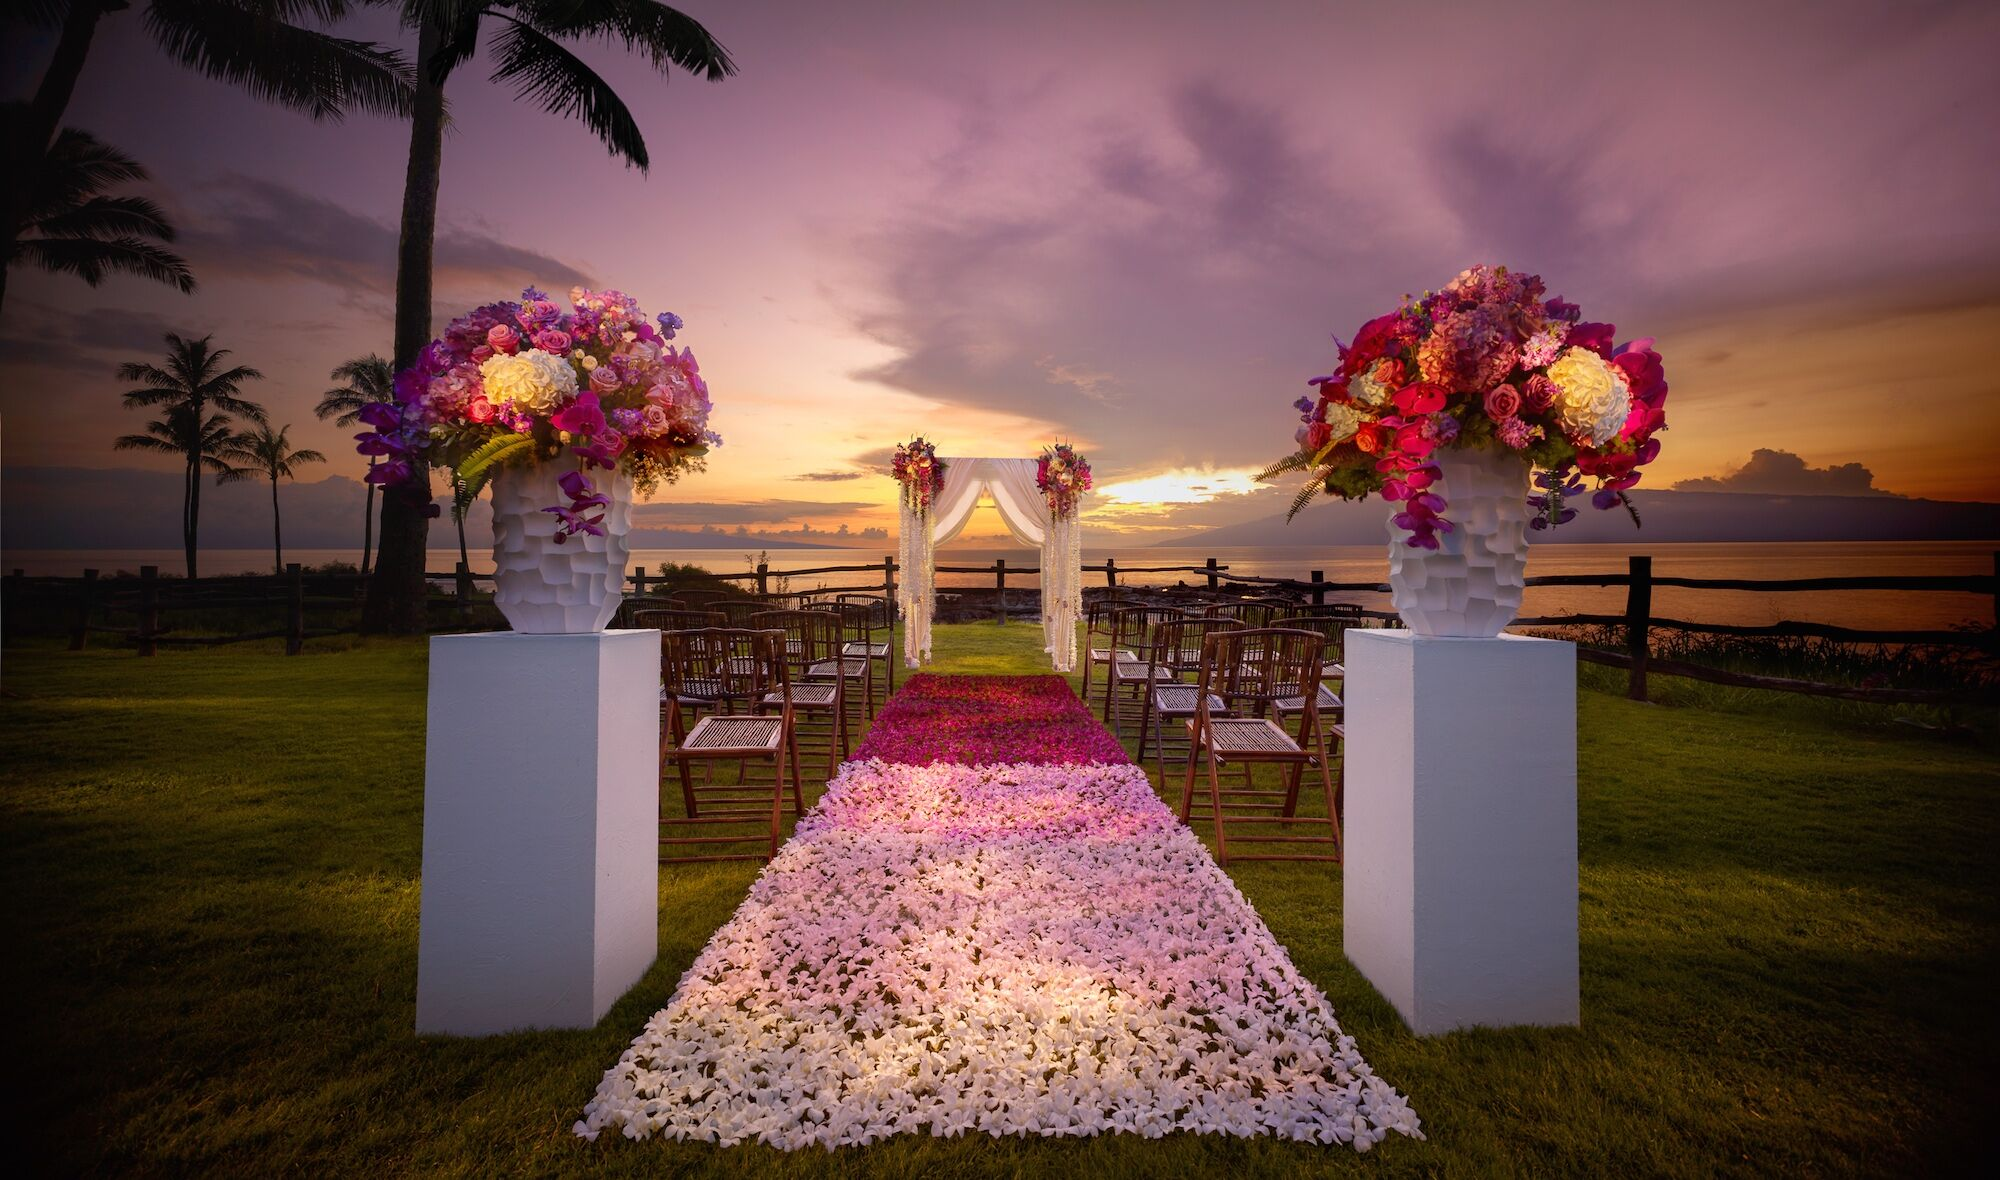 Couple S Wedding Ceremony And Reception Held At The Beach: Reception Venues - Lahaina, HI